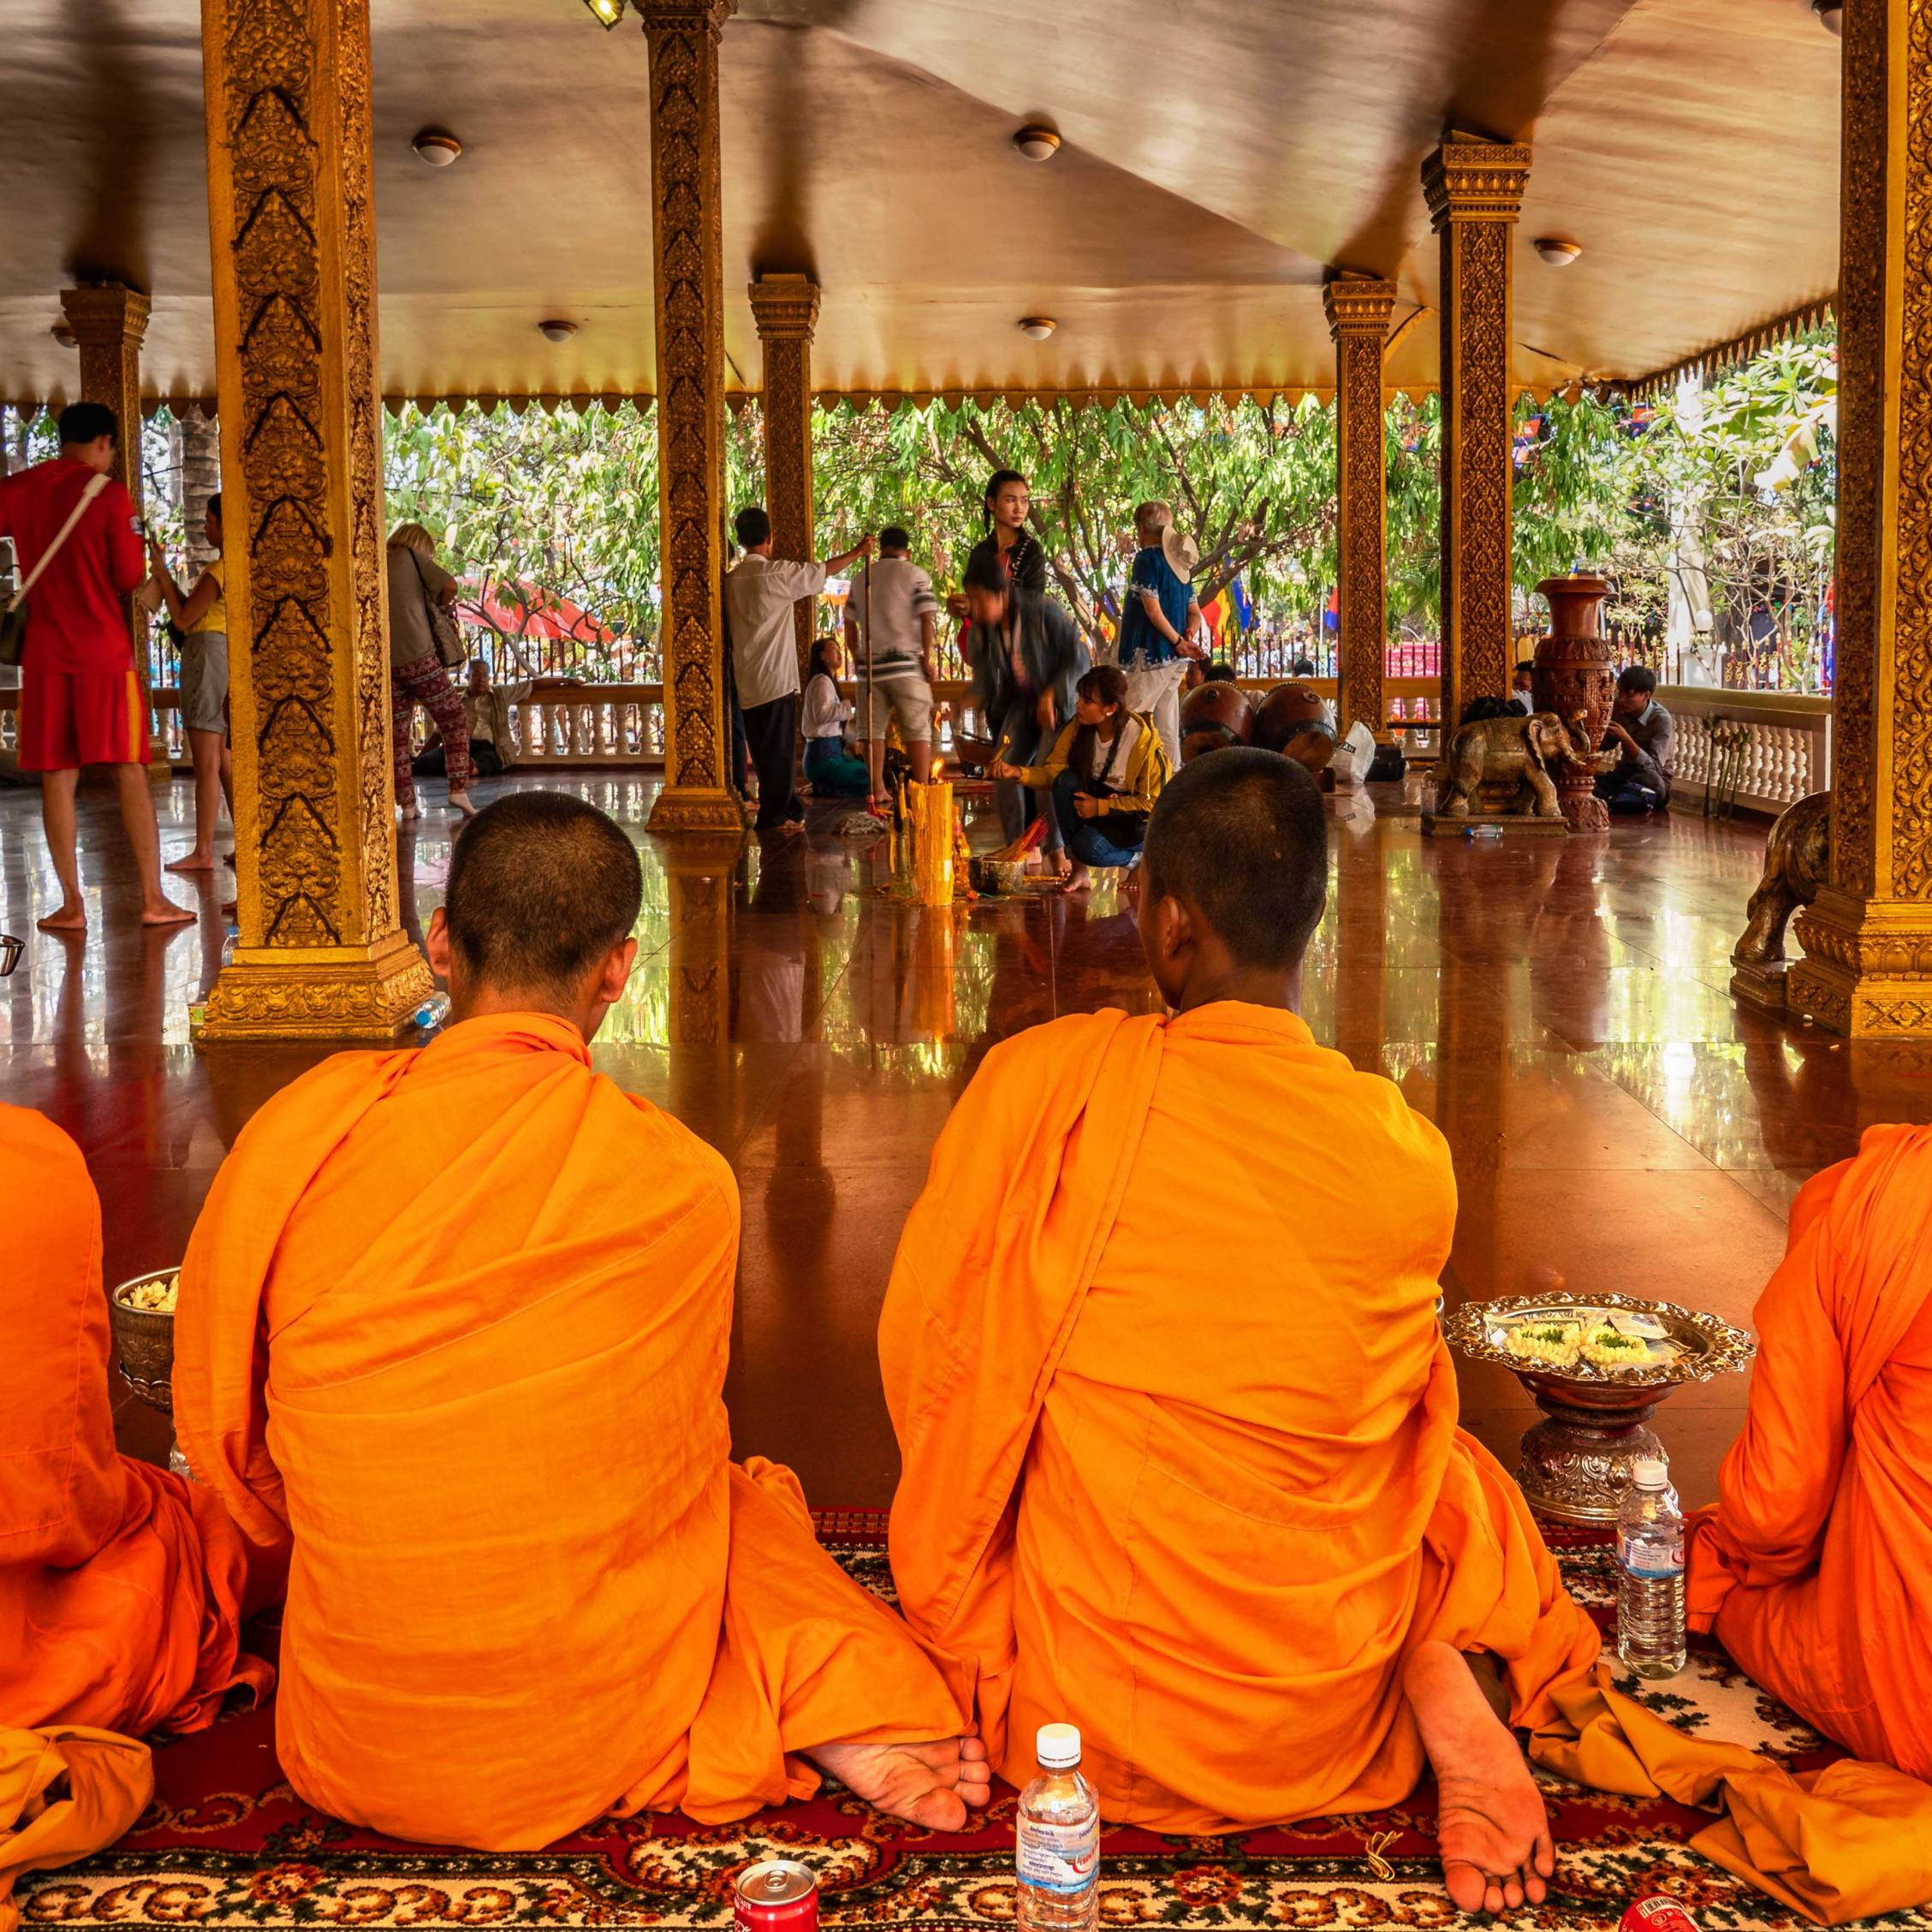 MONKS PRAYING IN A TEMPLE IN SIEM REAP